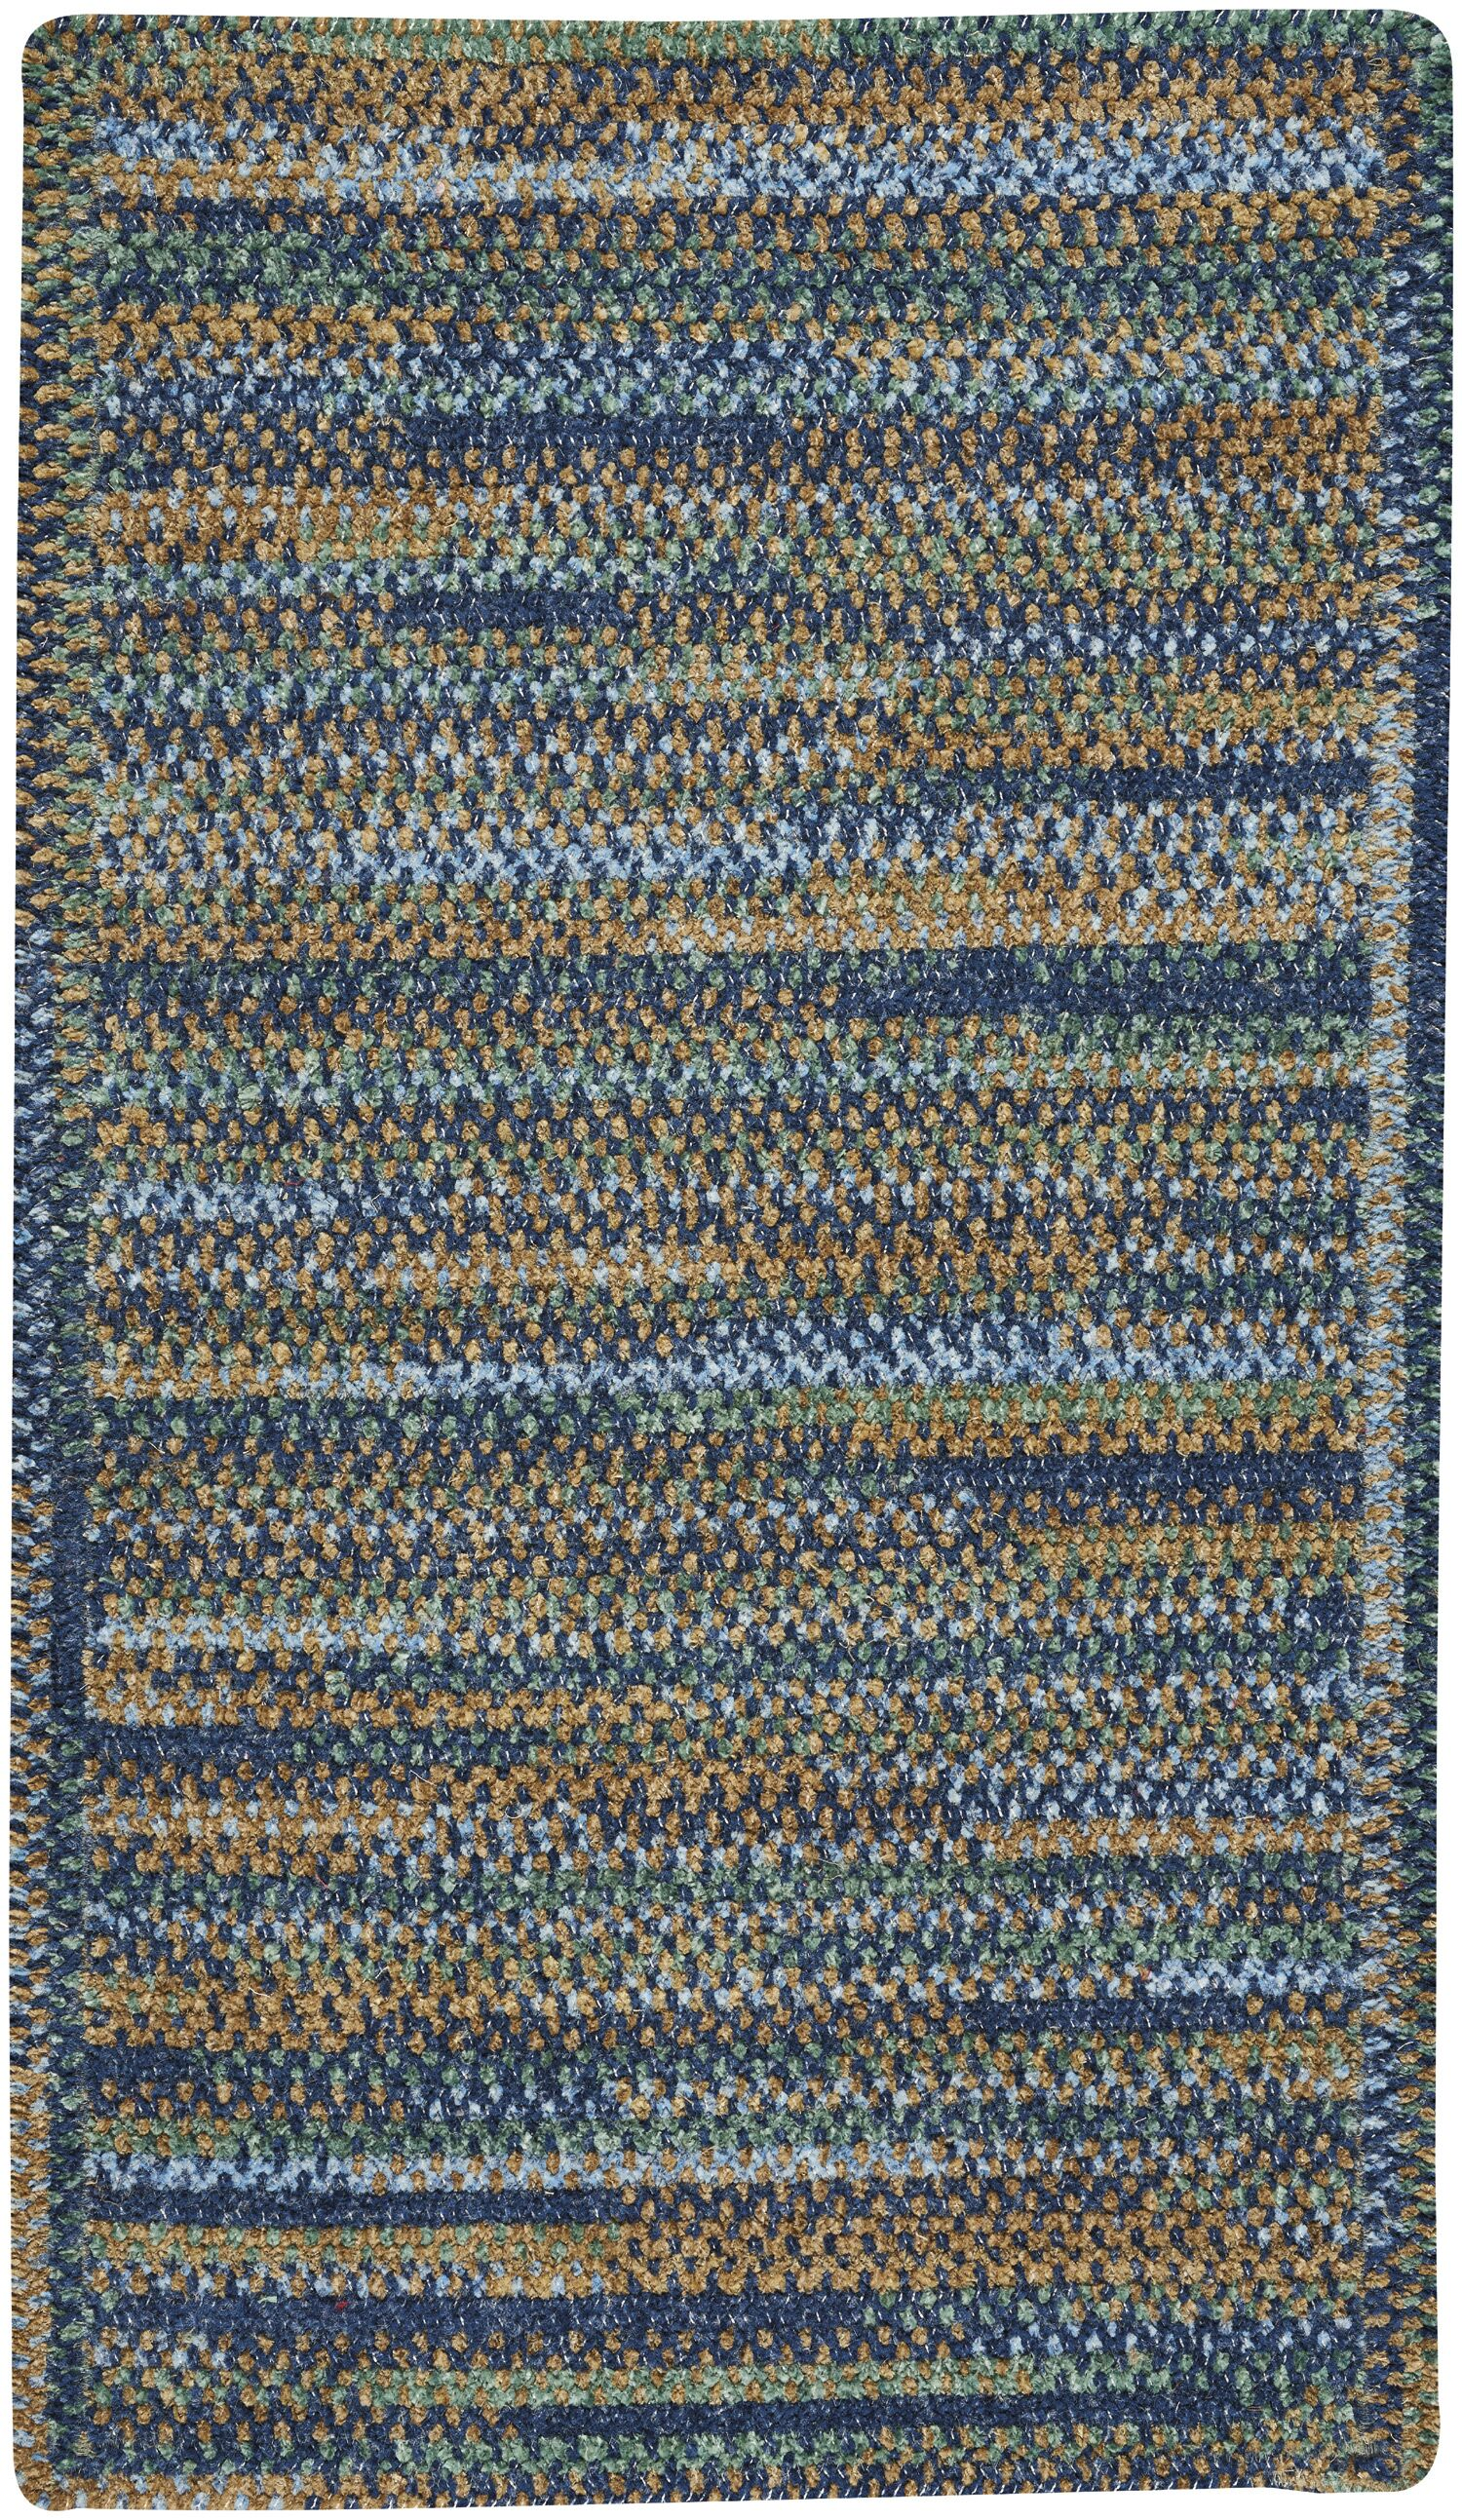 Eben Ocean Blue Area Rug Rug Size: Rectangle 4' x 6'